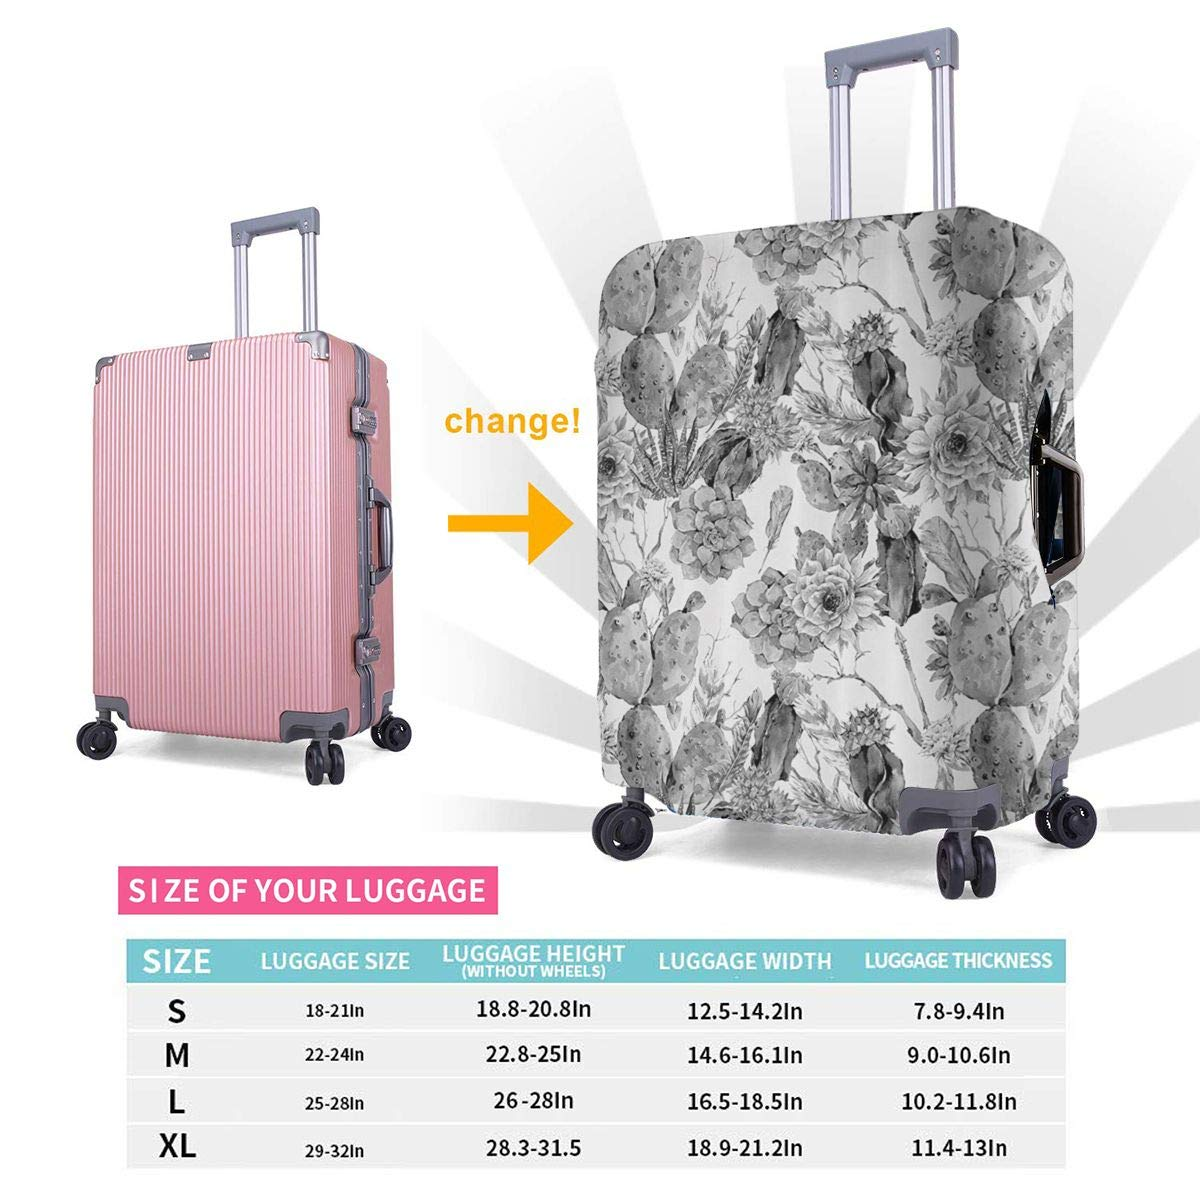 JHNDKJS Boho Style Monochrome Cactus Travel Luggage Cover Baggage Suitcase Protector Fit for 12-18 Inch Luggage